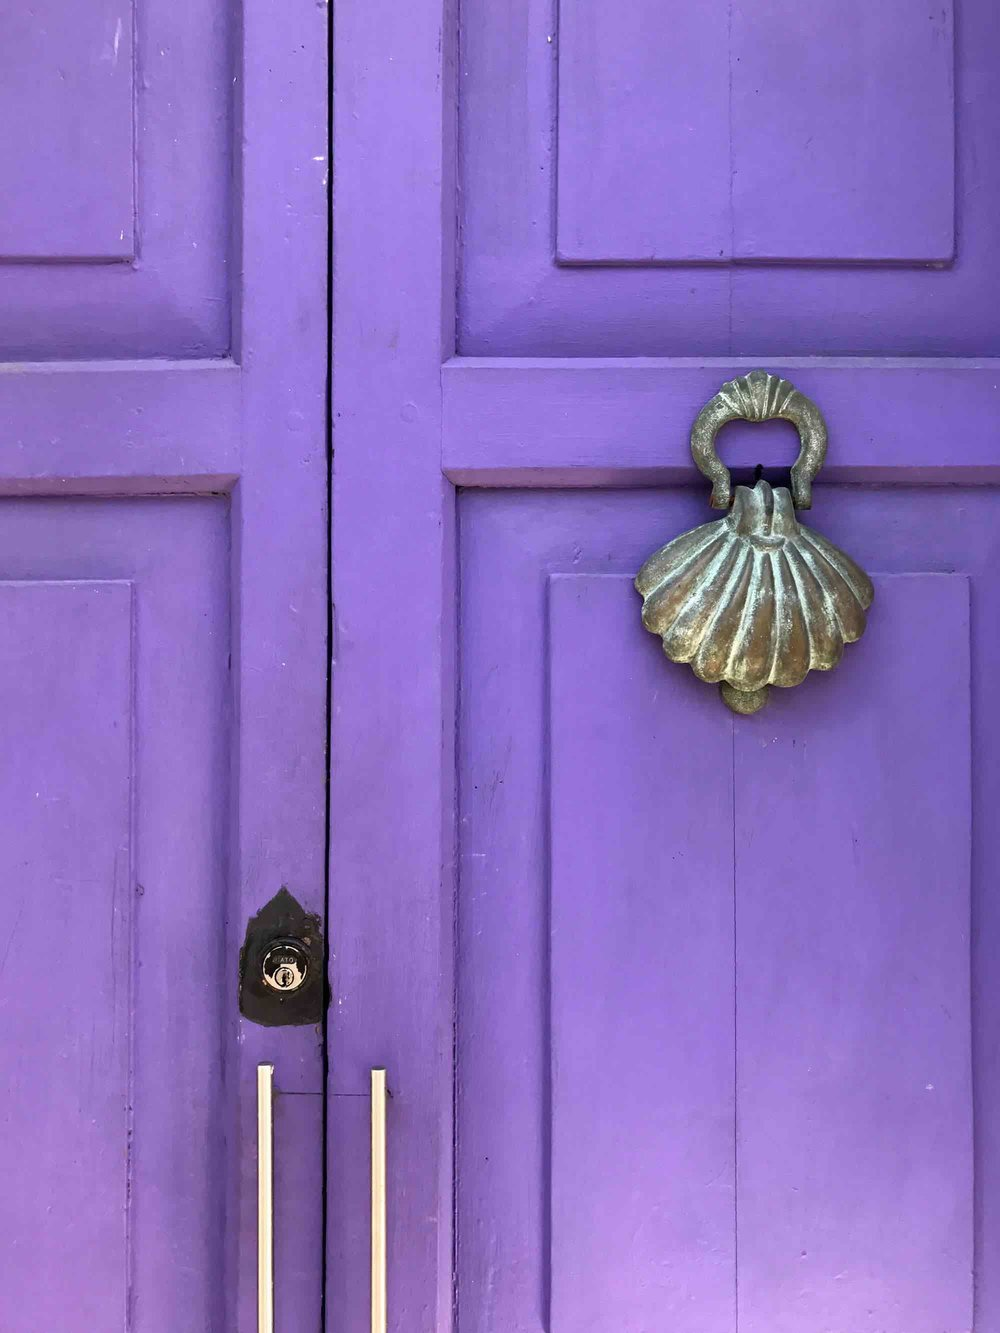 seashell door knocker | Doors and Door Knockers of Cartagena, Colombia